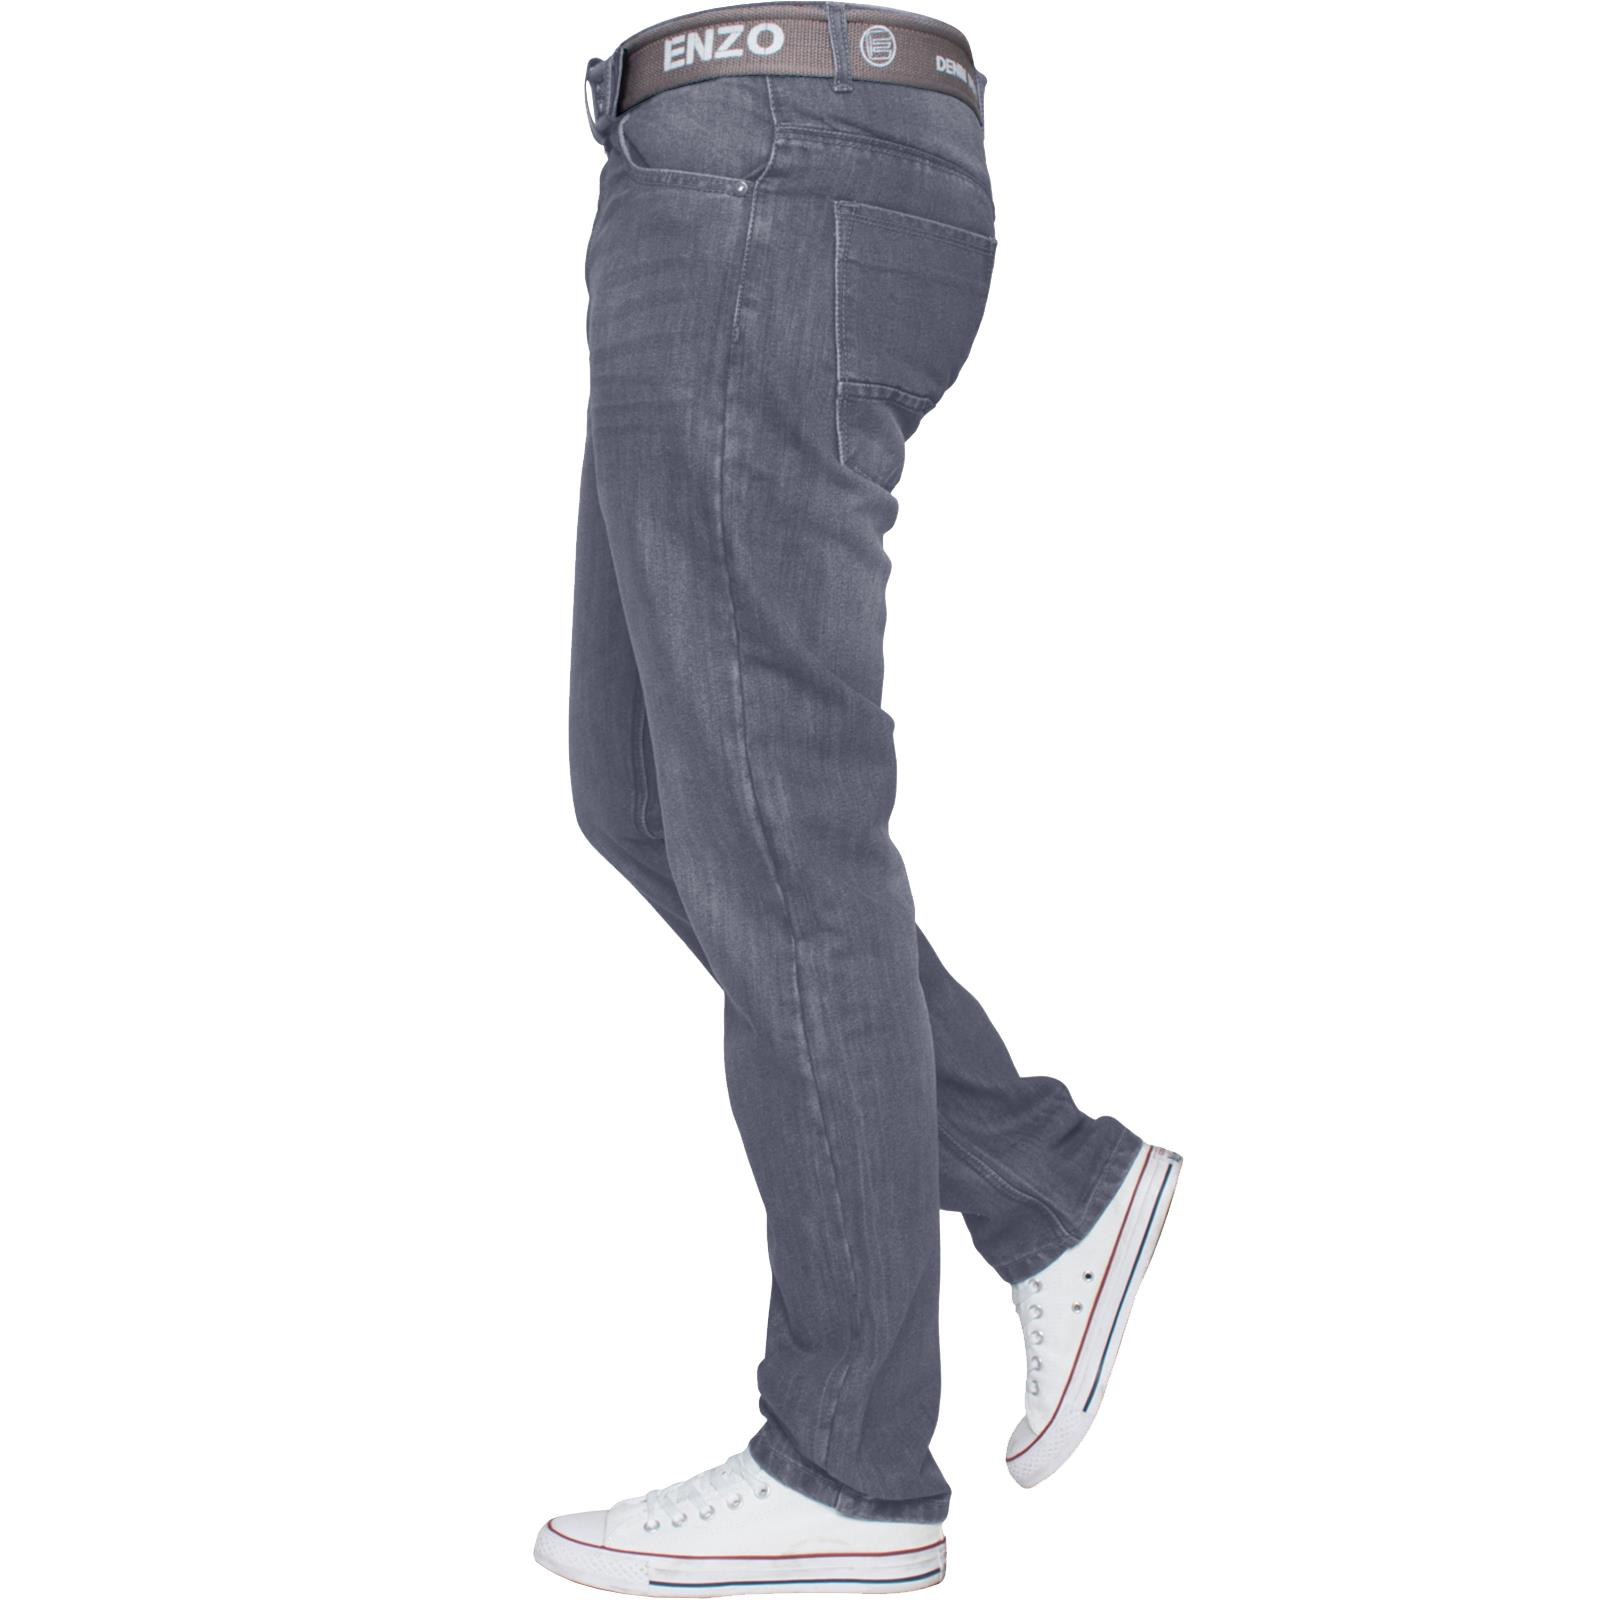 Enzo-Mens-Straight-Leg-Jeans-Regular-Fit-Denim-Pants-Big-Tall-All-Waists-Sizes thumbnail 13